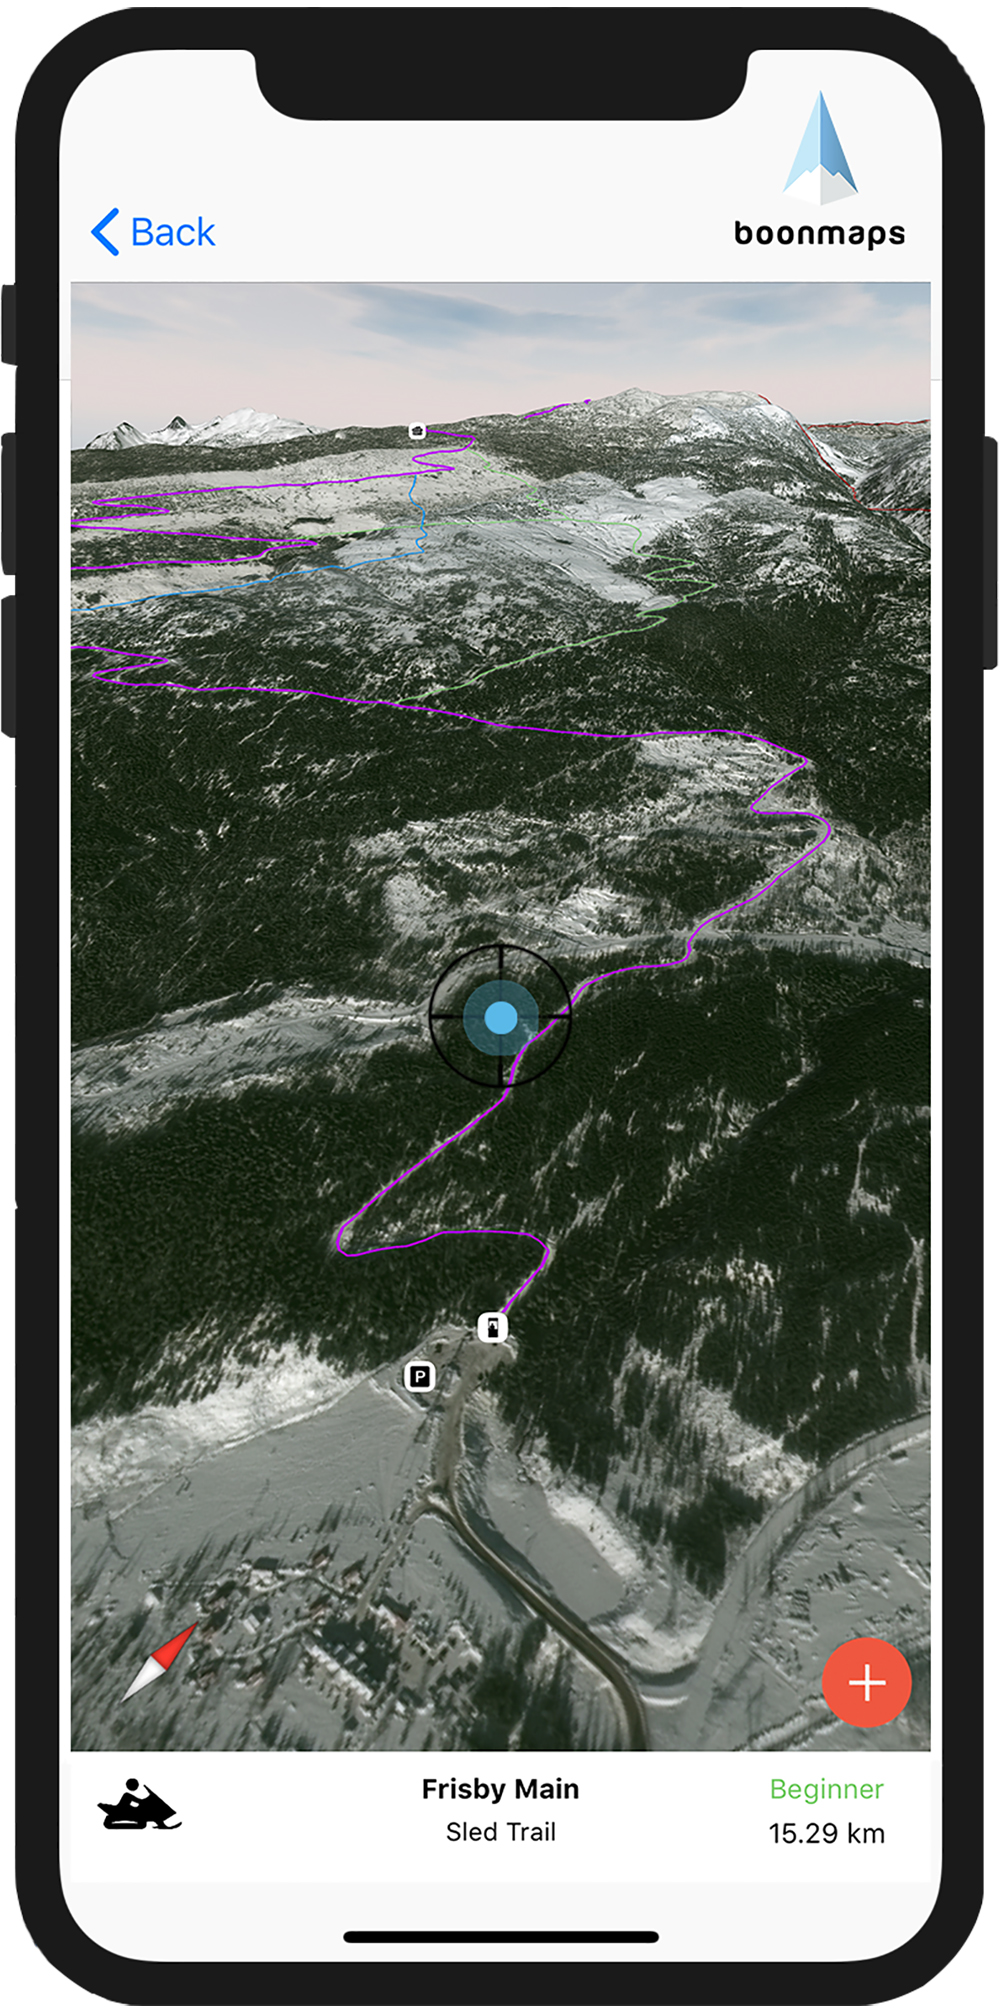 New Boonmaps app to aid backcountry navigation - Revelstoke Mountaineer